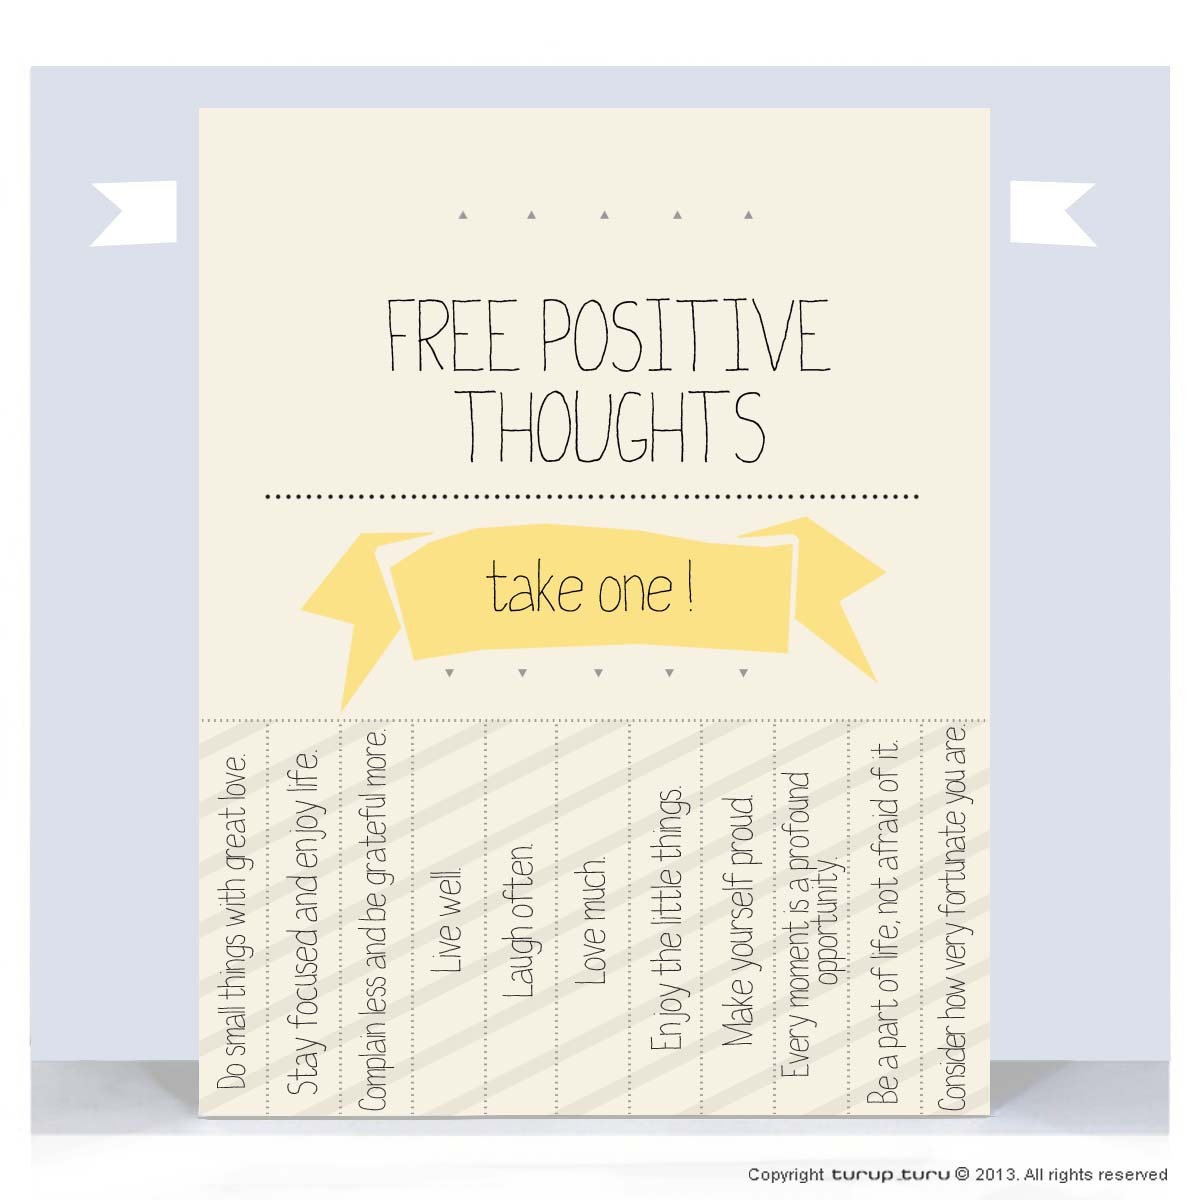 Free positive thoughts please take one.. | Life | Pinterest |Positive Thoughts Take One Daily